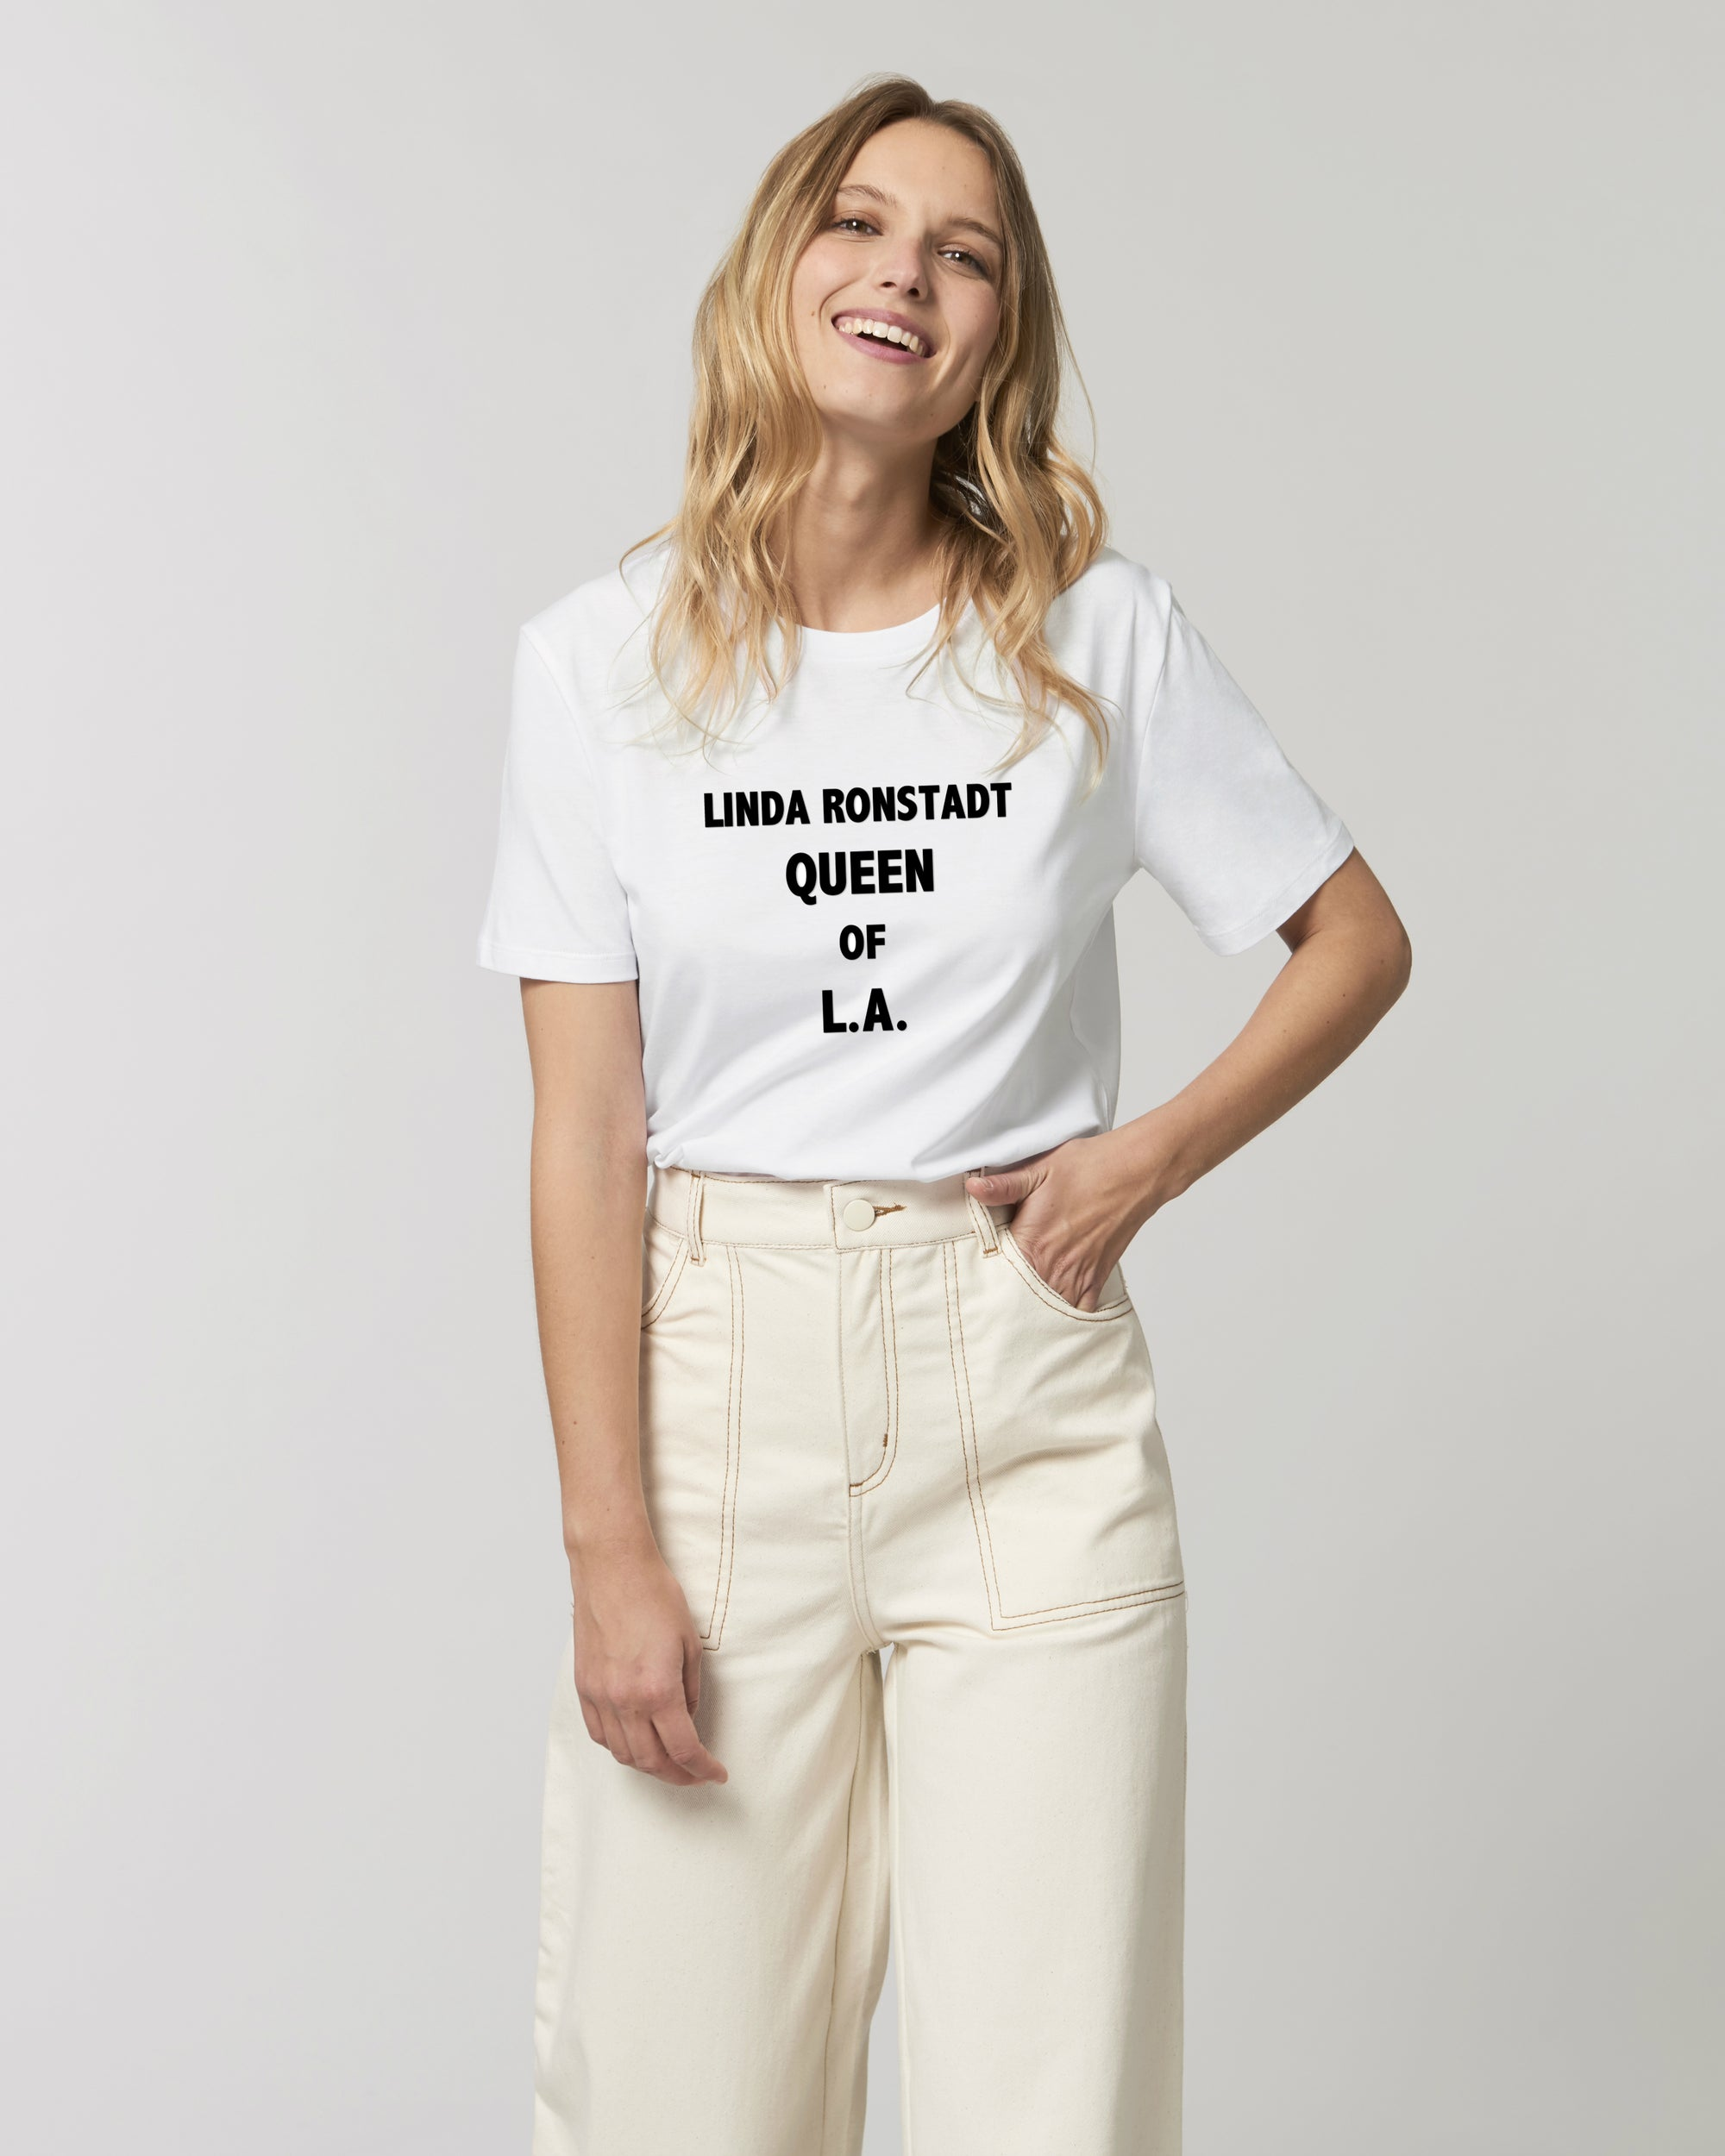 'LINDA RONSTADT QUEEN OF L.A.' EMBROIDERED FITTED ORGANIC COTTON UNISEX T-SHIRT